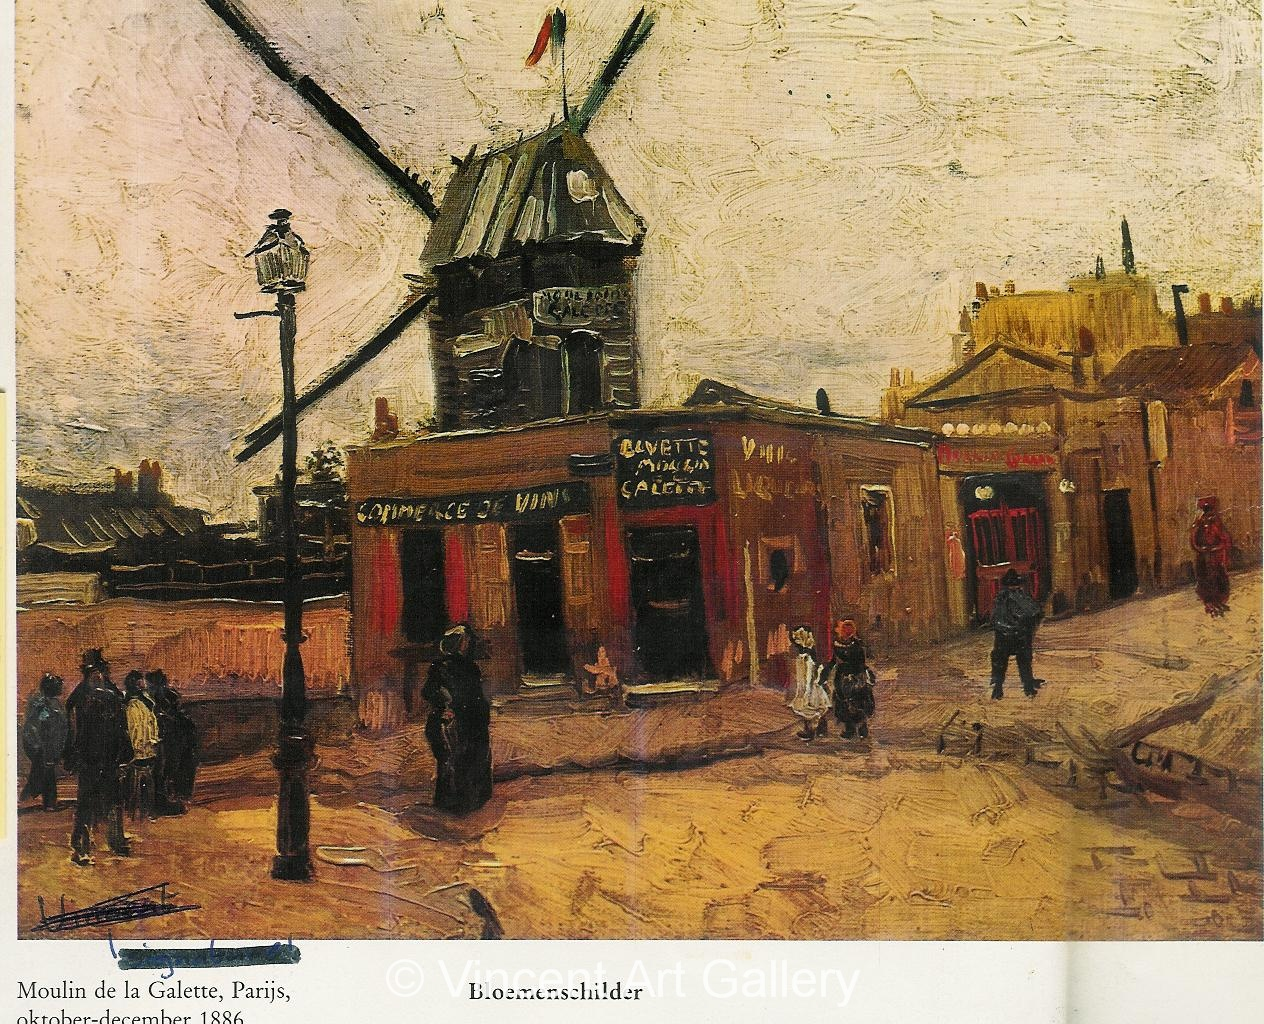 https://www.vangoghpaintings.com/paintings/JH1170,%20Le%20Moulin%20the%20La%20Galette.jpg